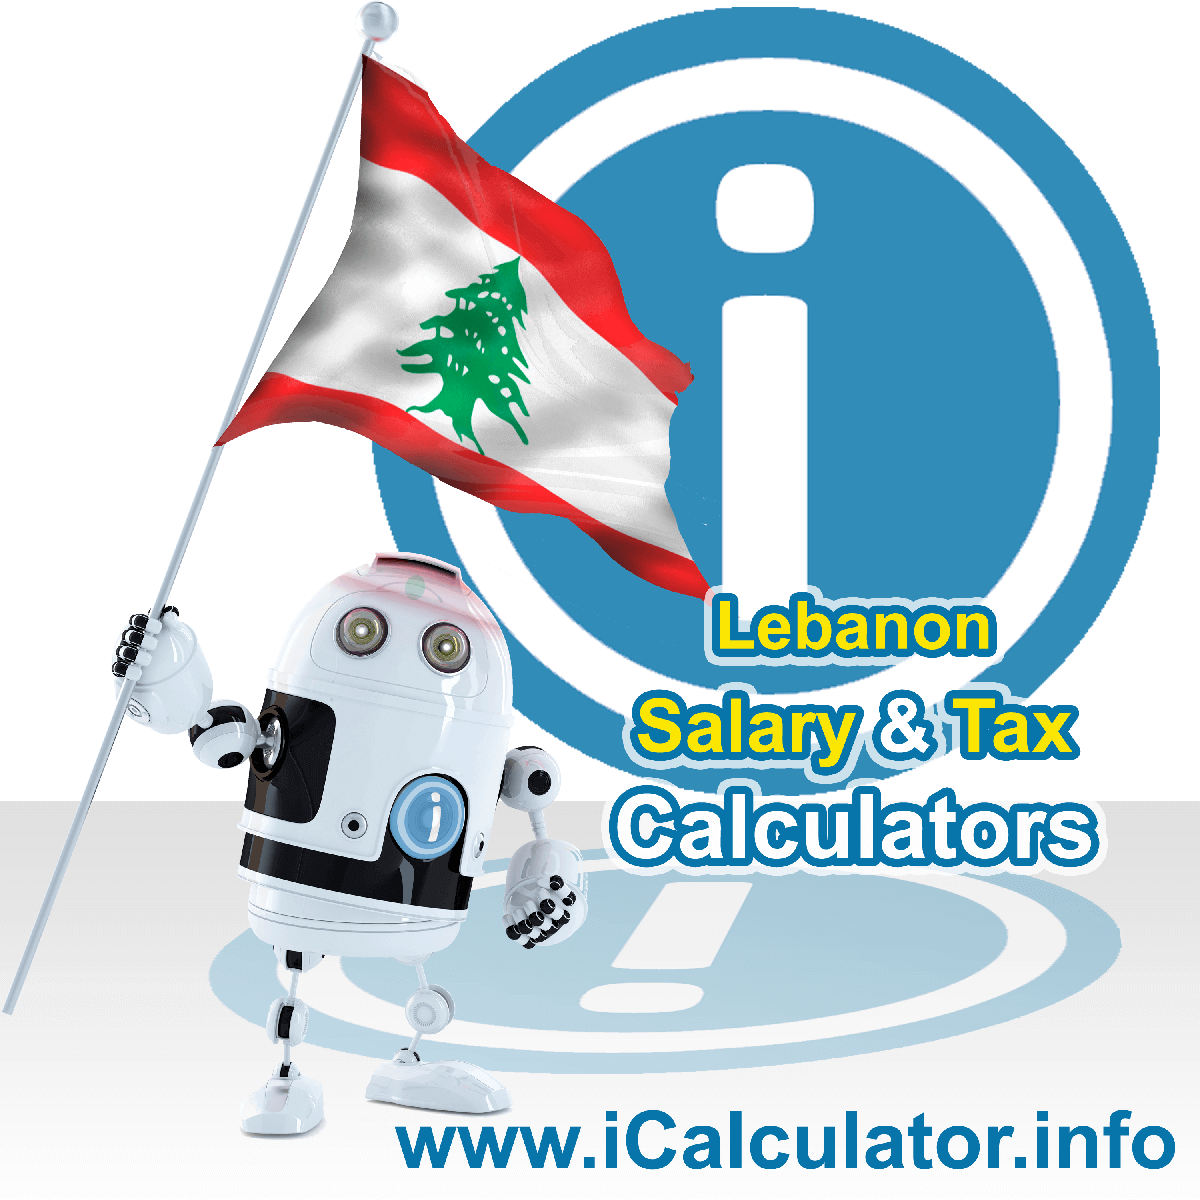 Lebanon Salary Calculator. This image shows the Lebanonese flag and information relating to the tax formula for the Lebanon Tax Calculator